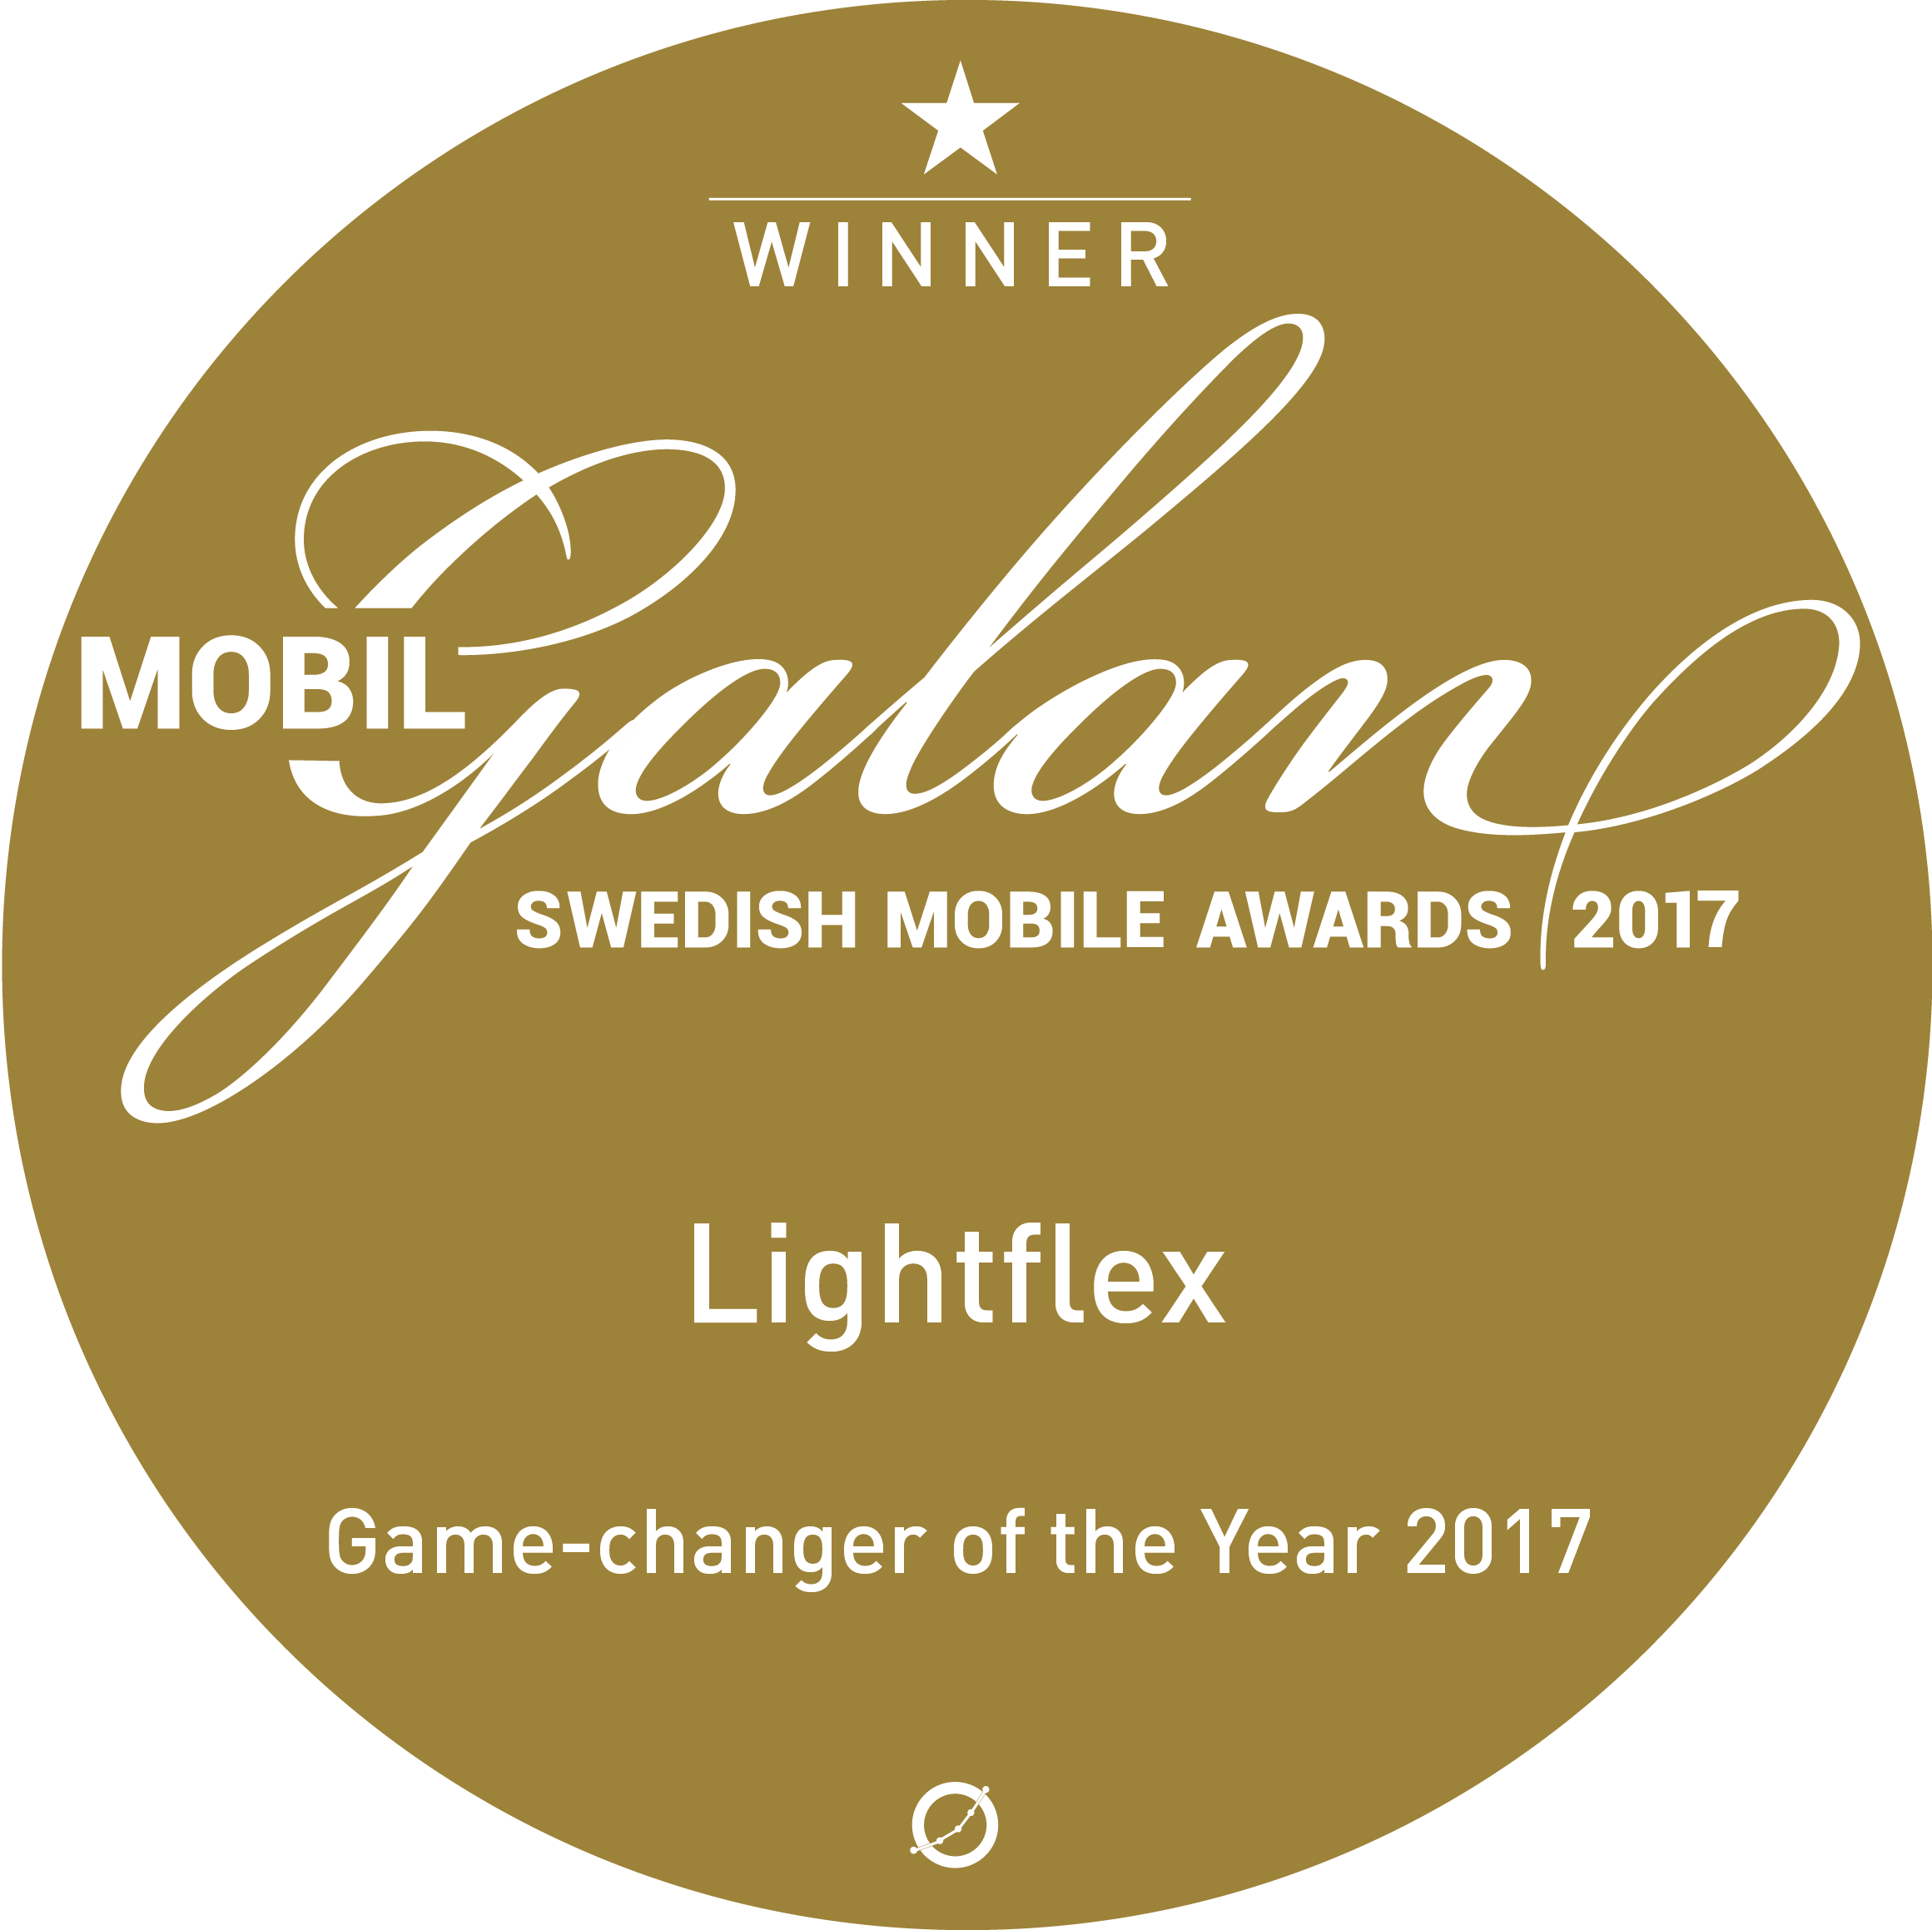 Game Changer of the year 2017 - Lightflex - Mobilalan